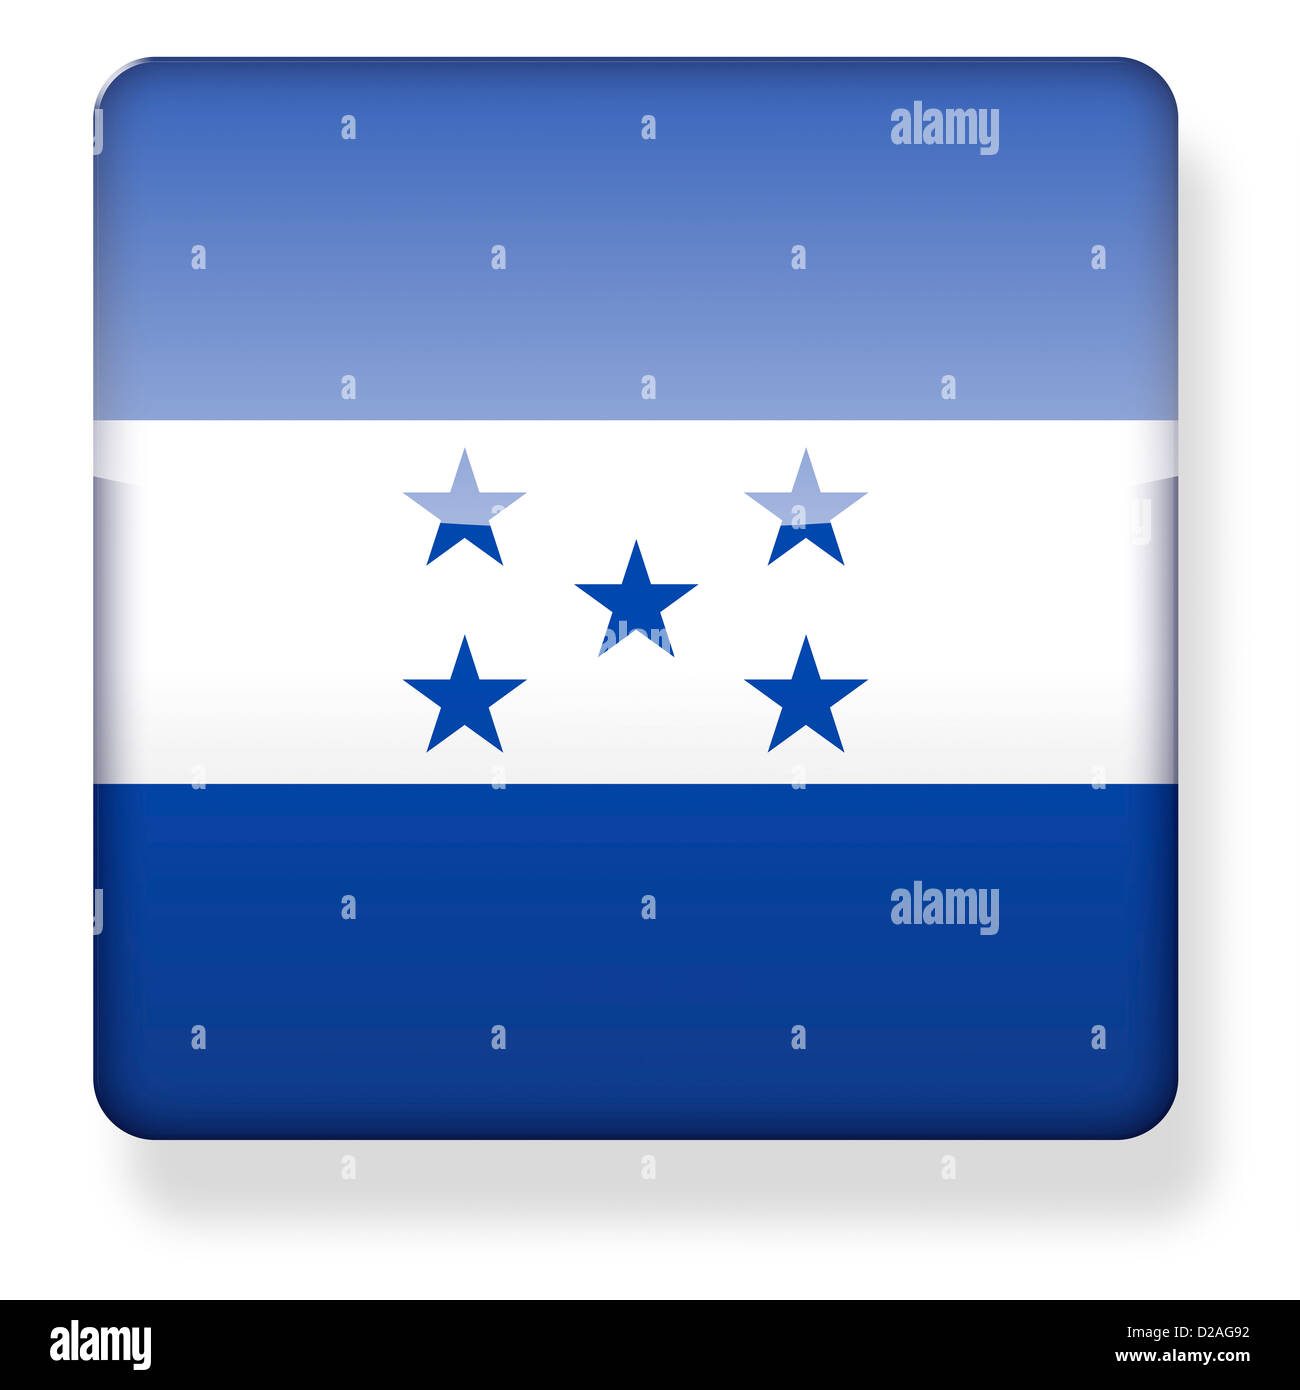 Honduras flag as an app icon. Clipping path included. Stock Photo